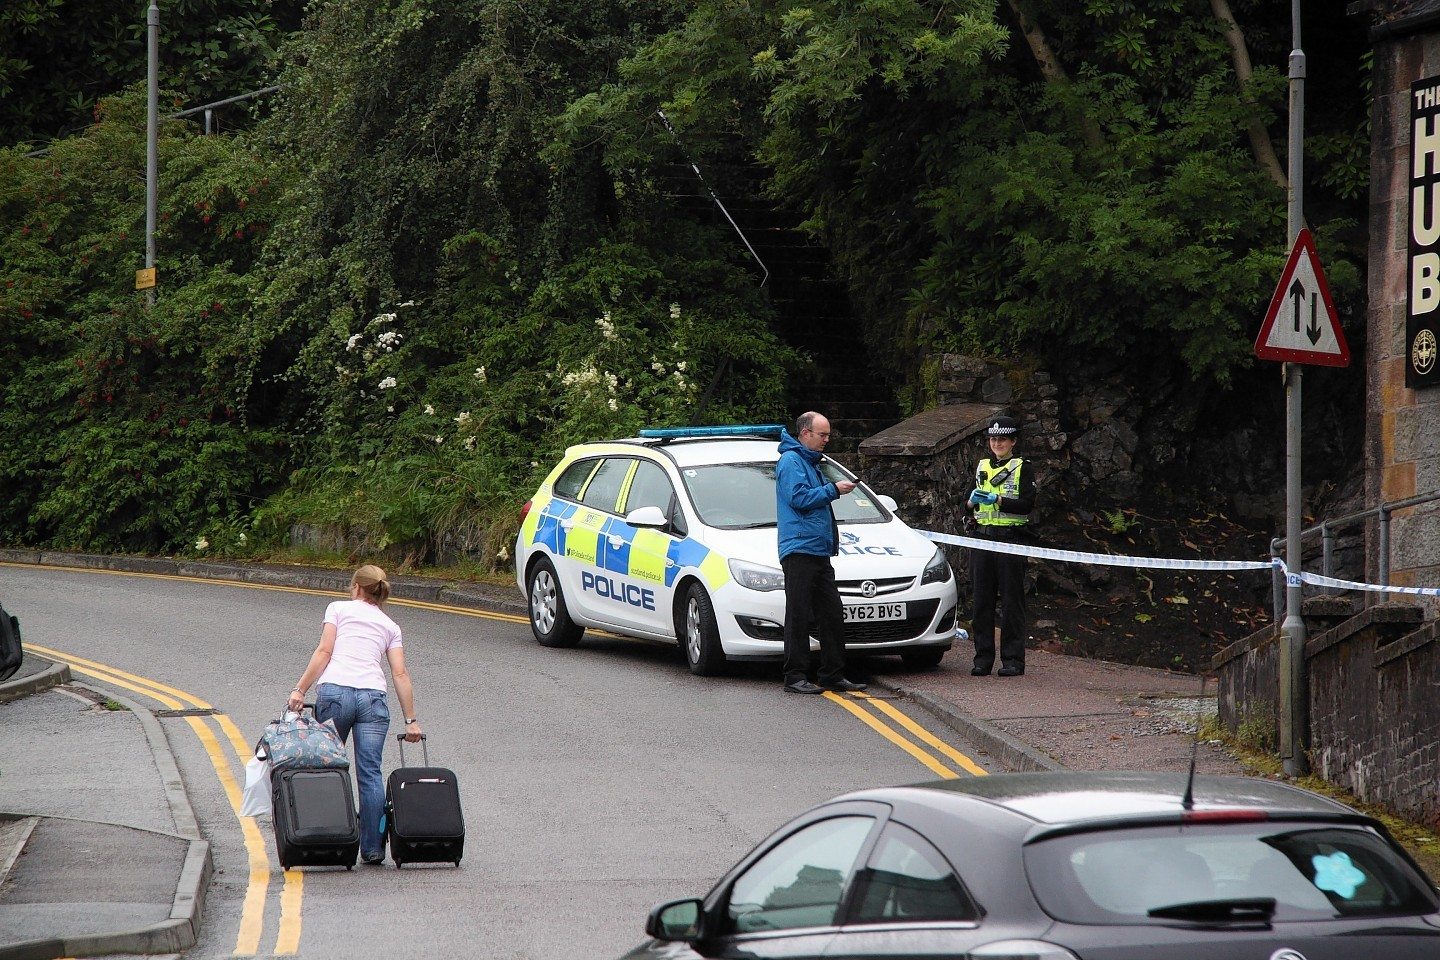 Police in the area of Fort William where the woman was found